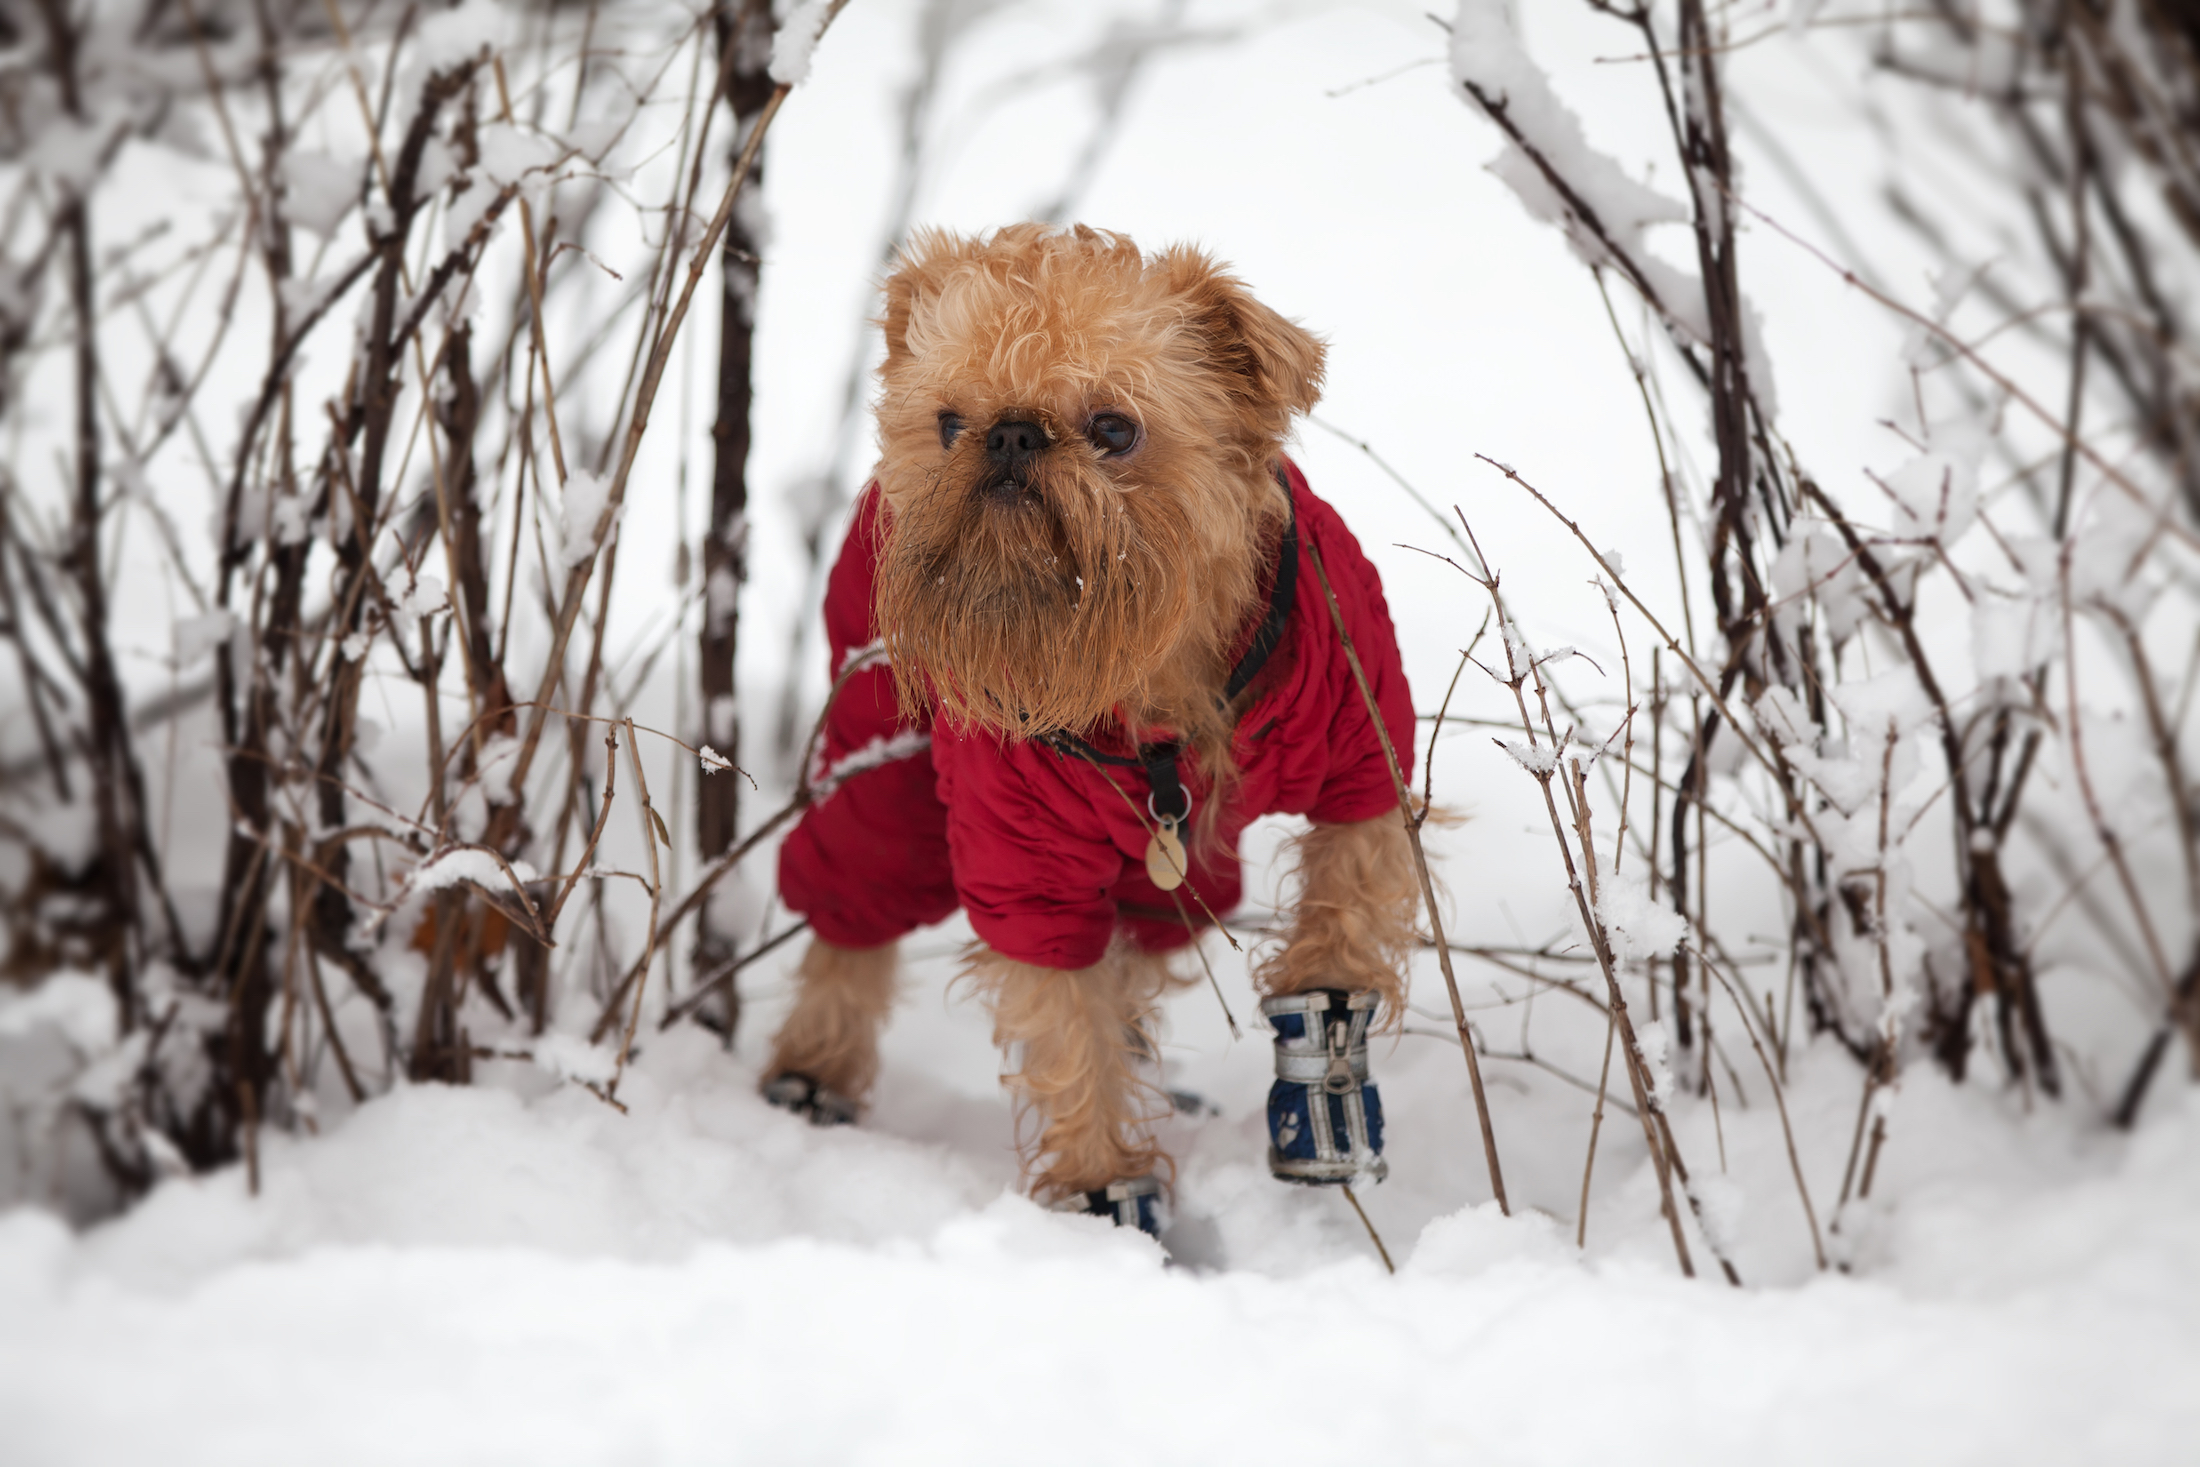 How to Fit a Dog for a Winter Coat, According to the Experts